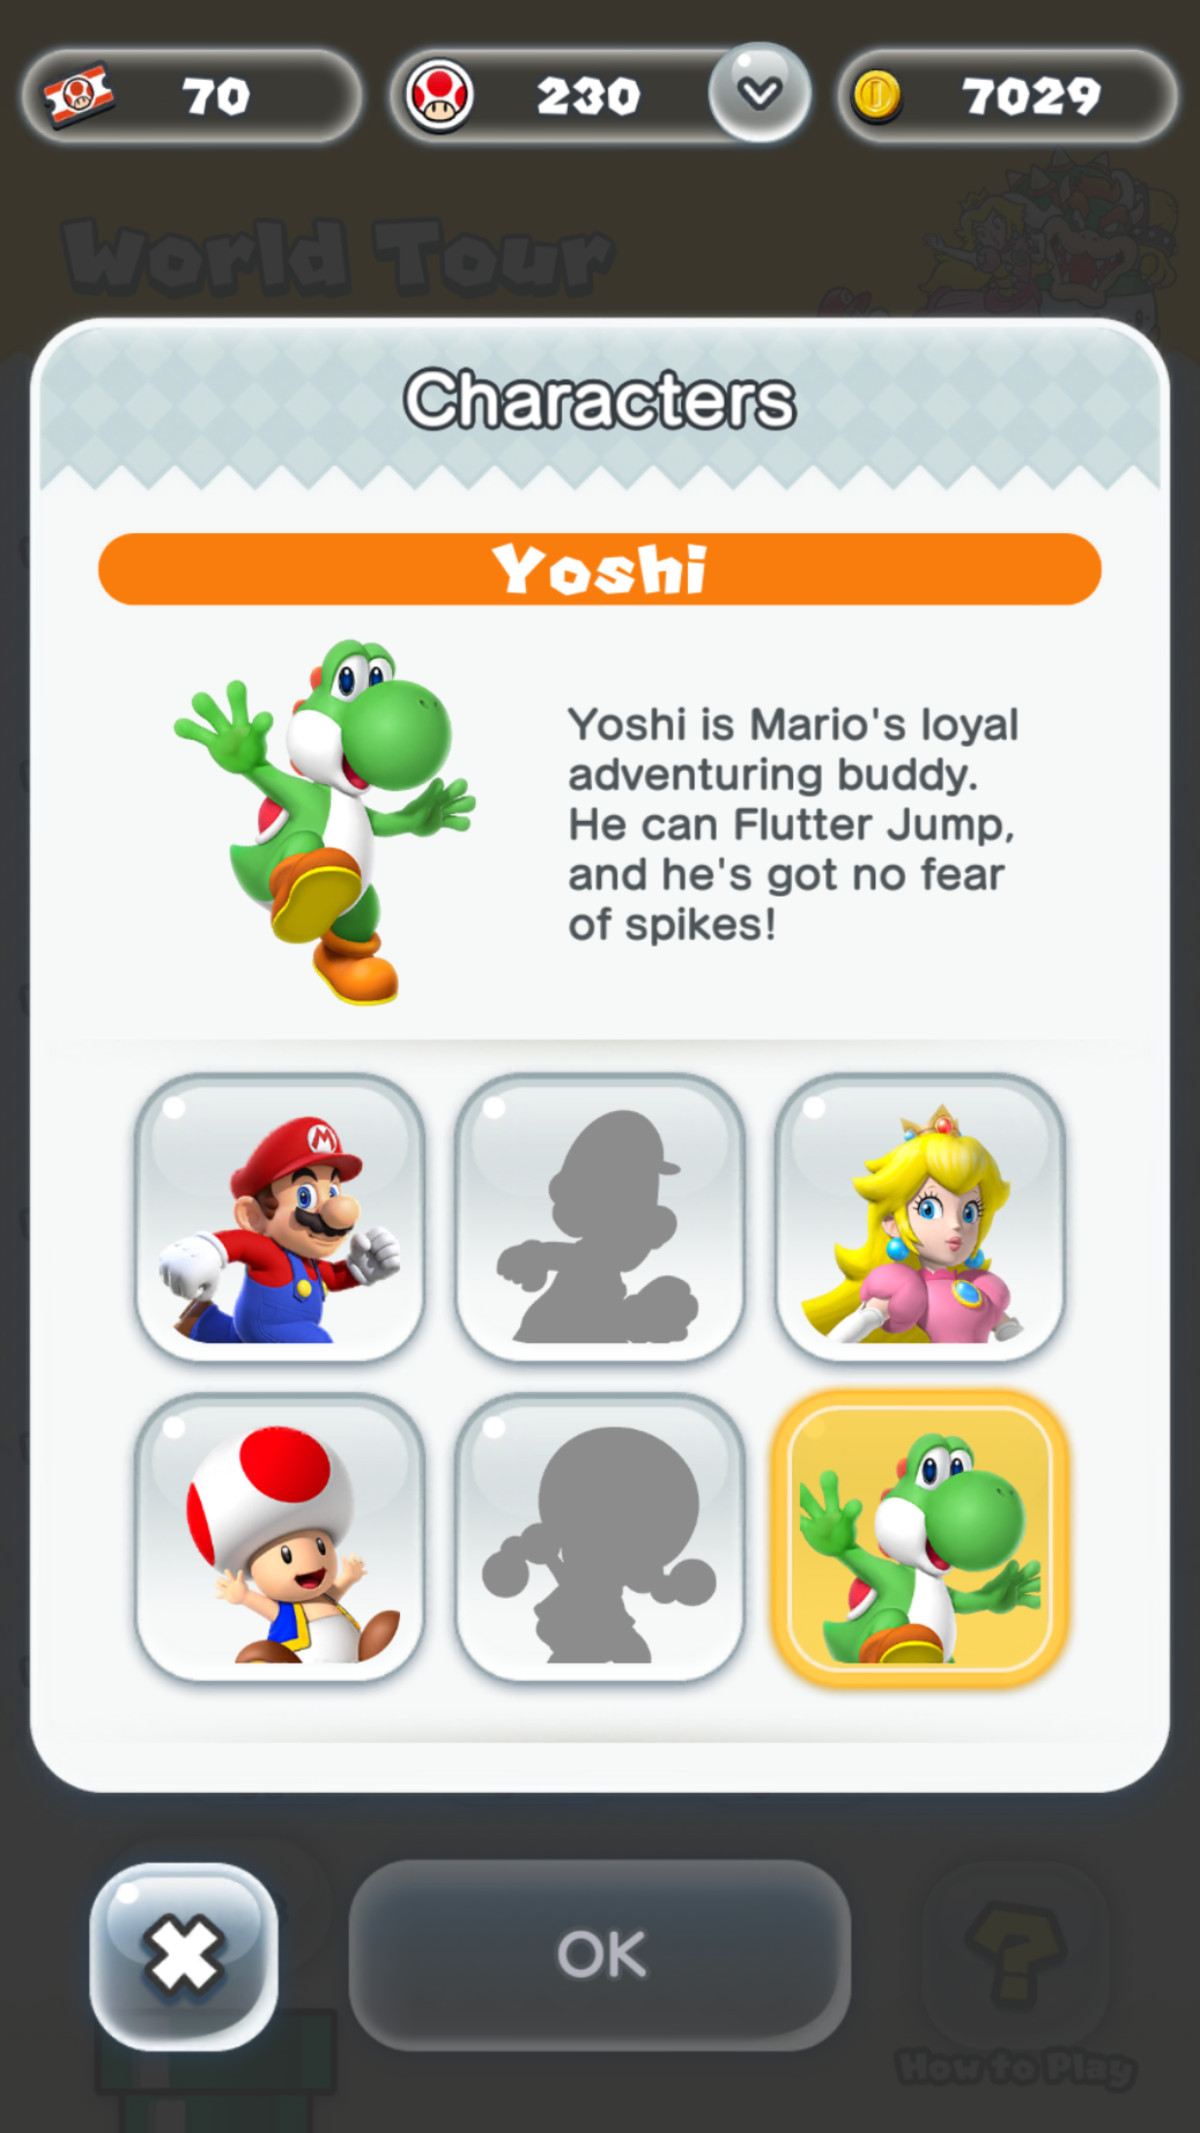 How to master Super Mario Run: 13 quick and easy tips - The